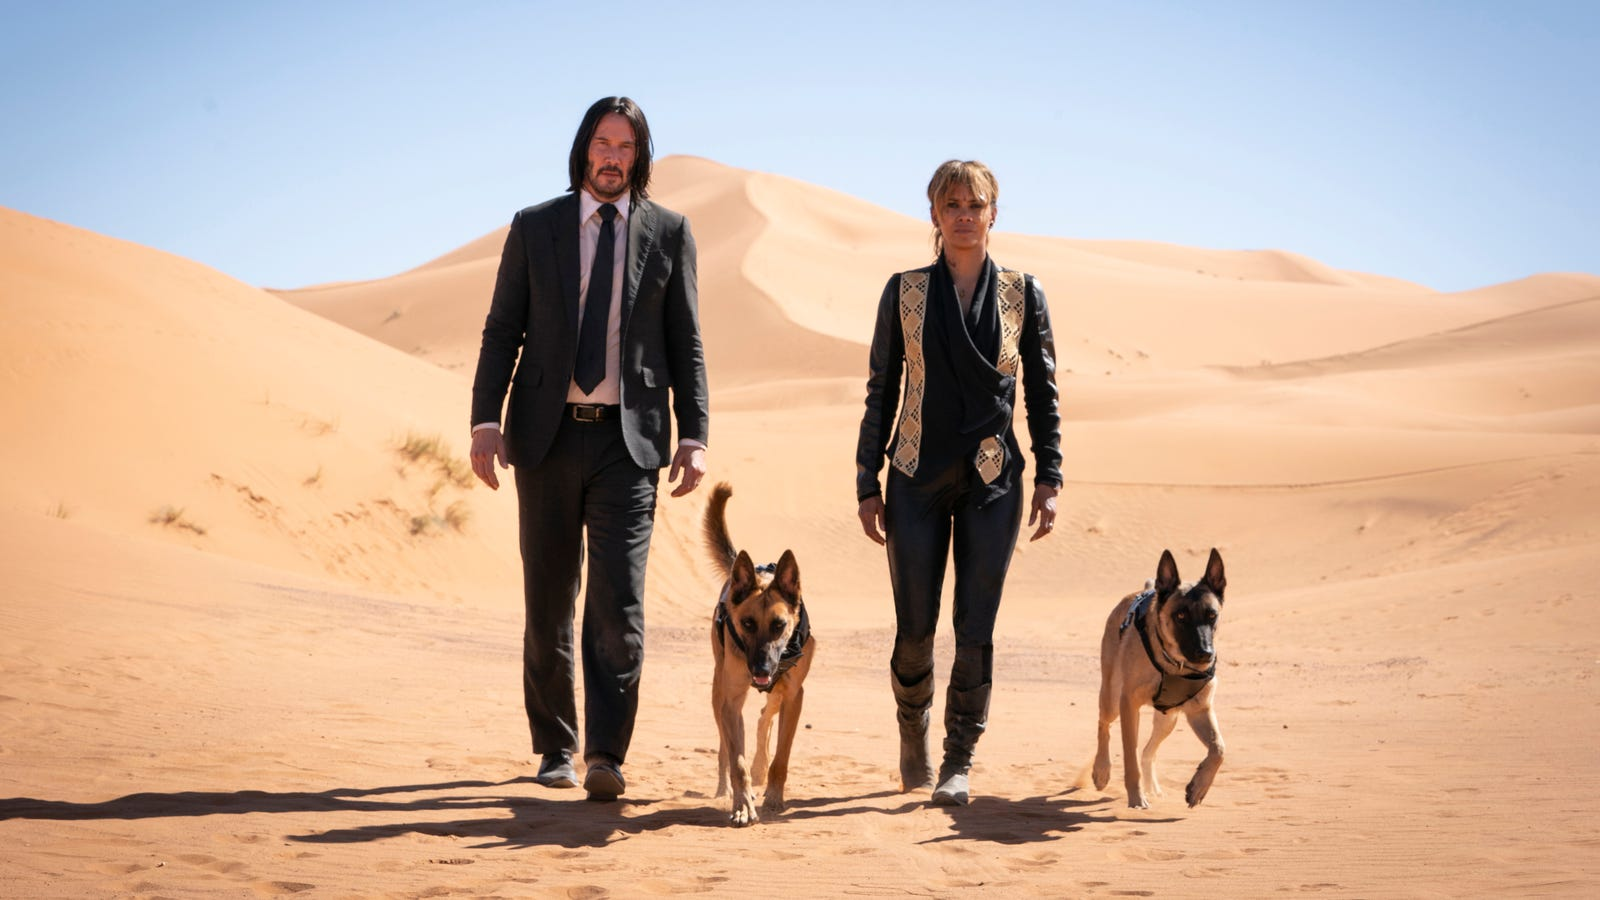 John Wick Is Getting a Female-Focused Spin-Off That Is Somehow Not About Halle Berry's Character